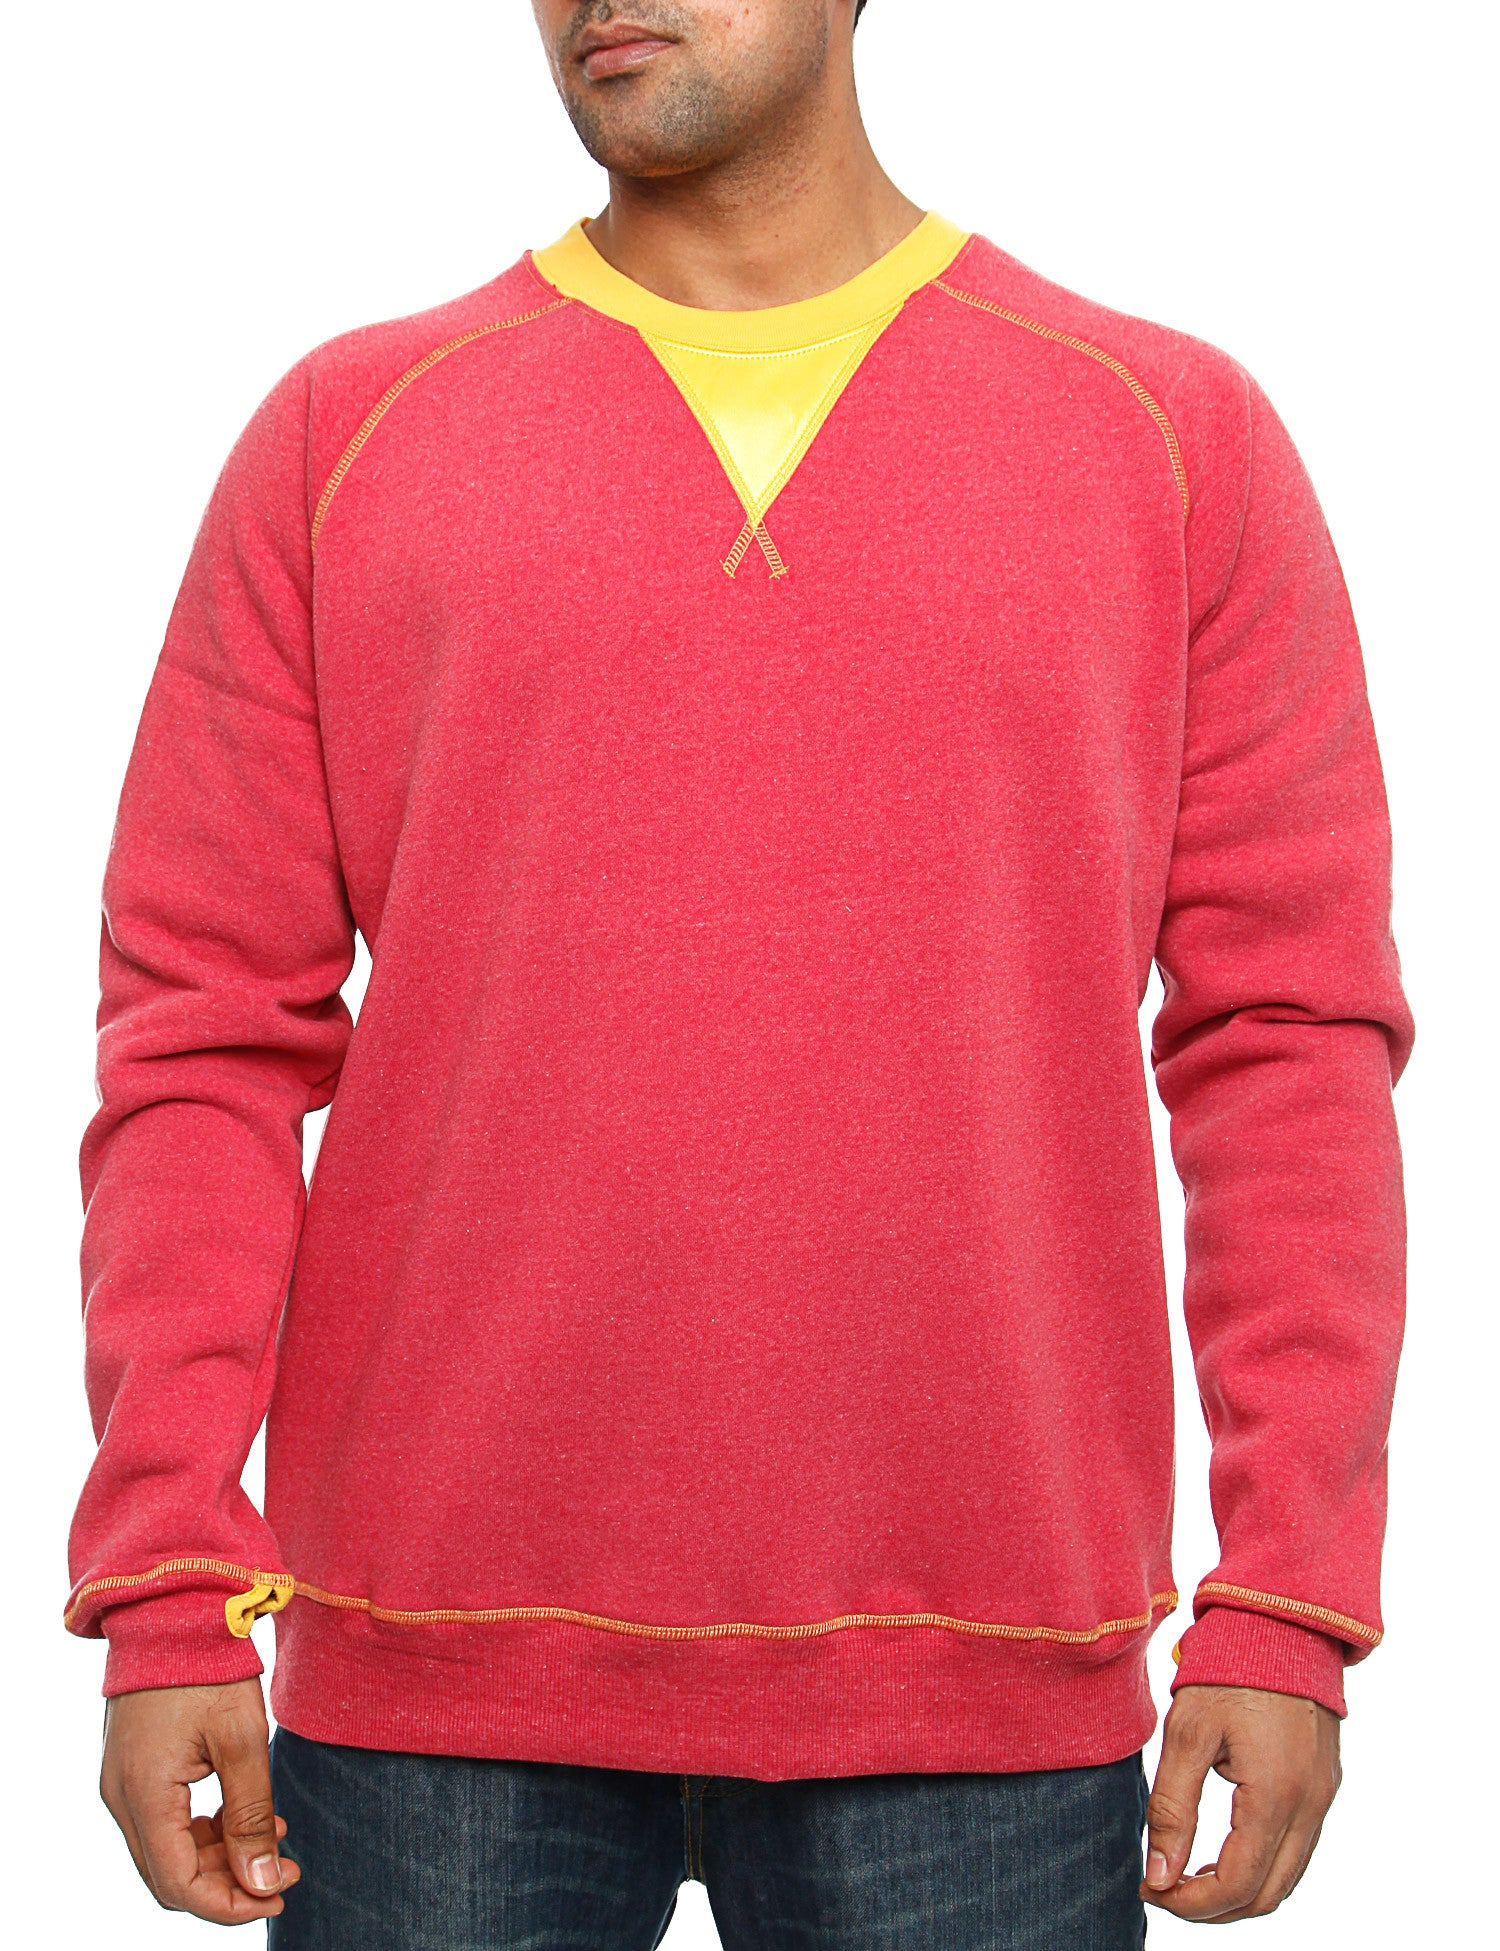 Royal Blue Crewneck 44012 Burgundy Red